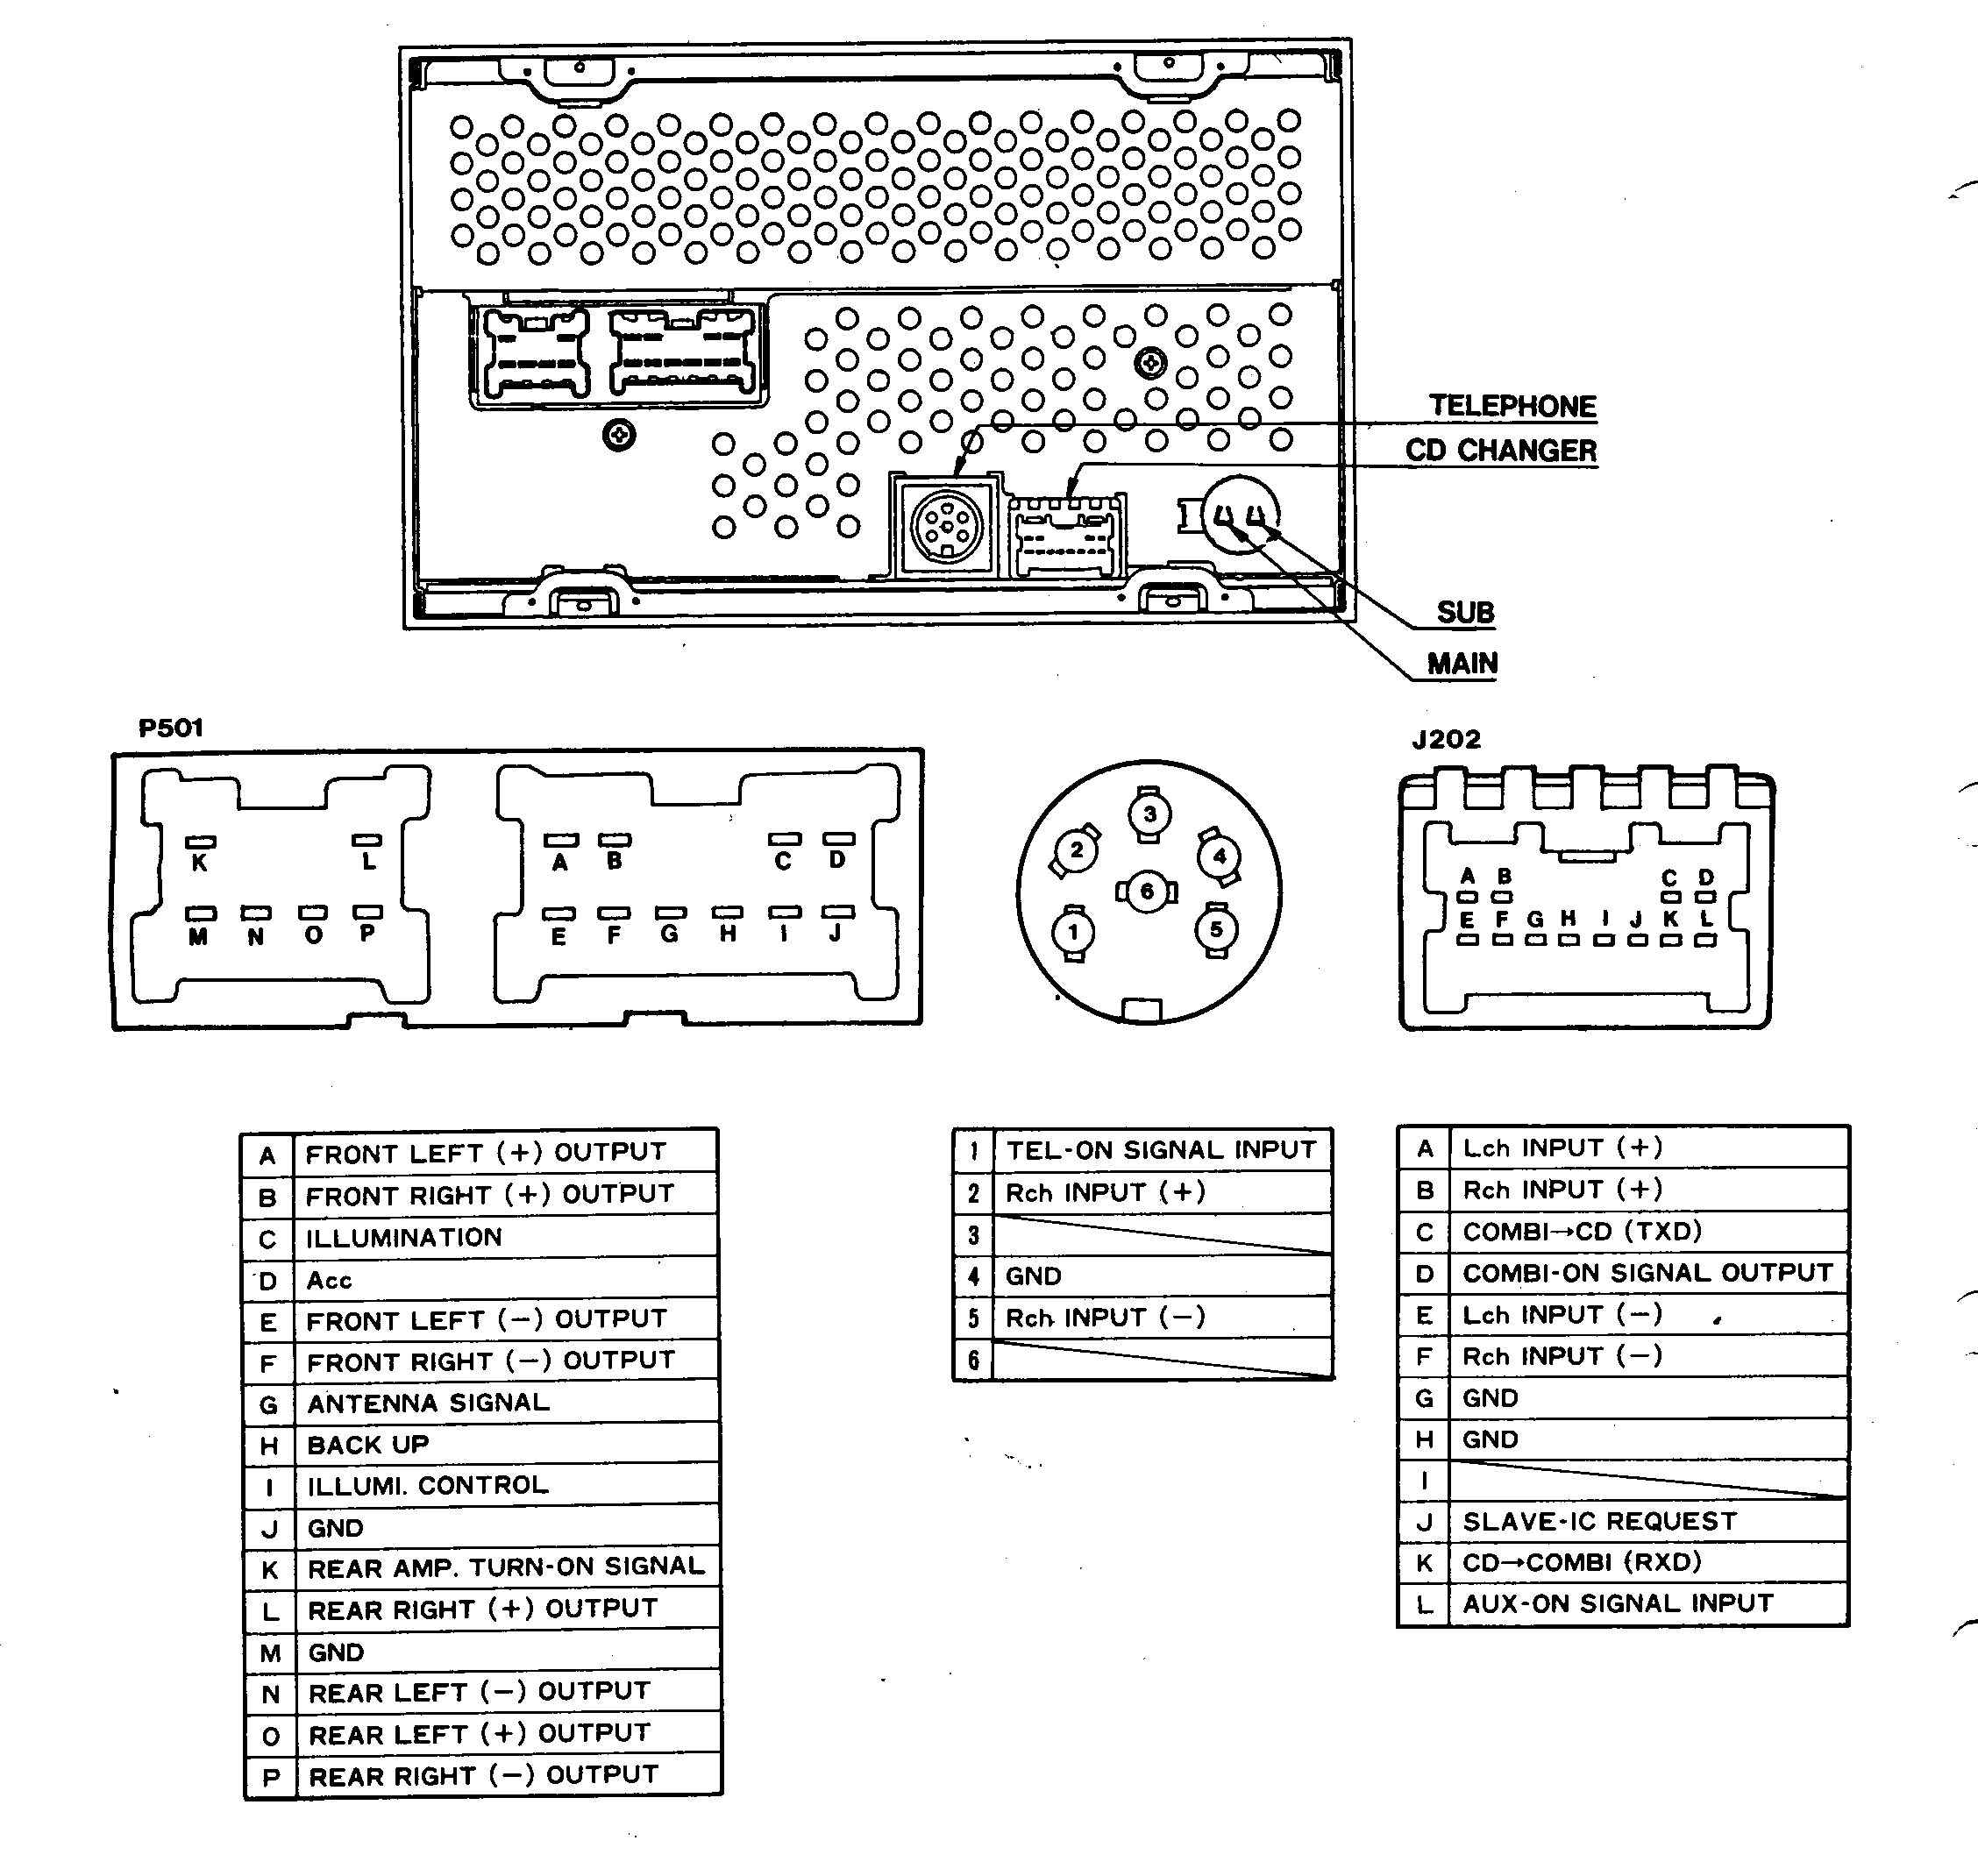 2006 Ford Ranger Radio Wiring Diagram from www.tehnomagazin.com